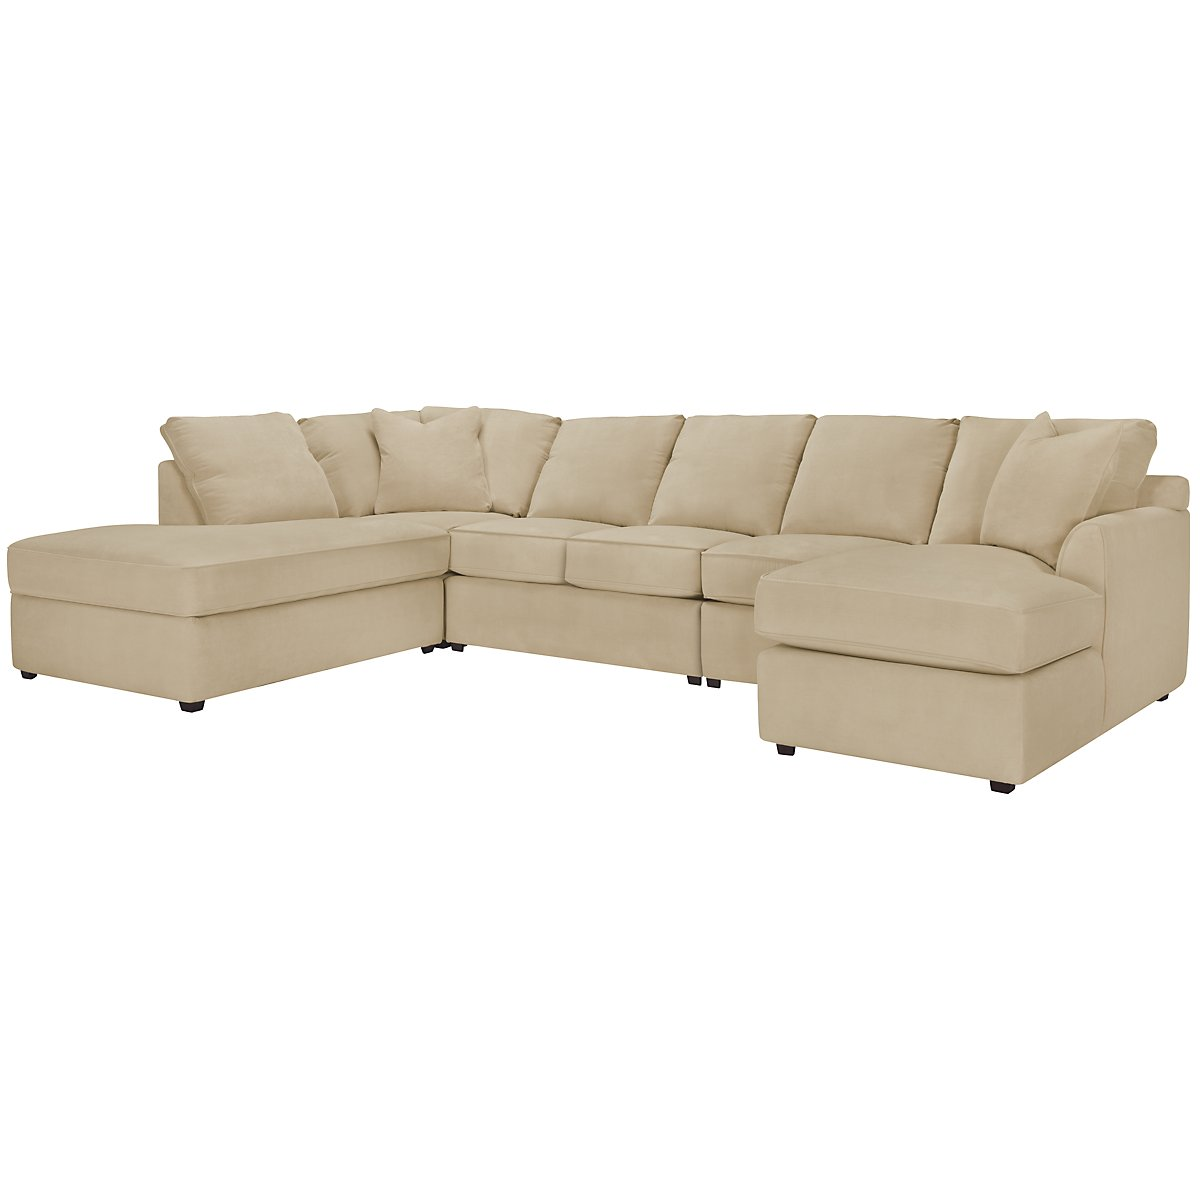 Express3 Light Beige Microfiber Large Left Bumper Sectional